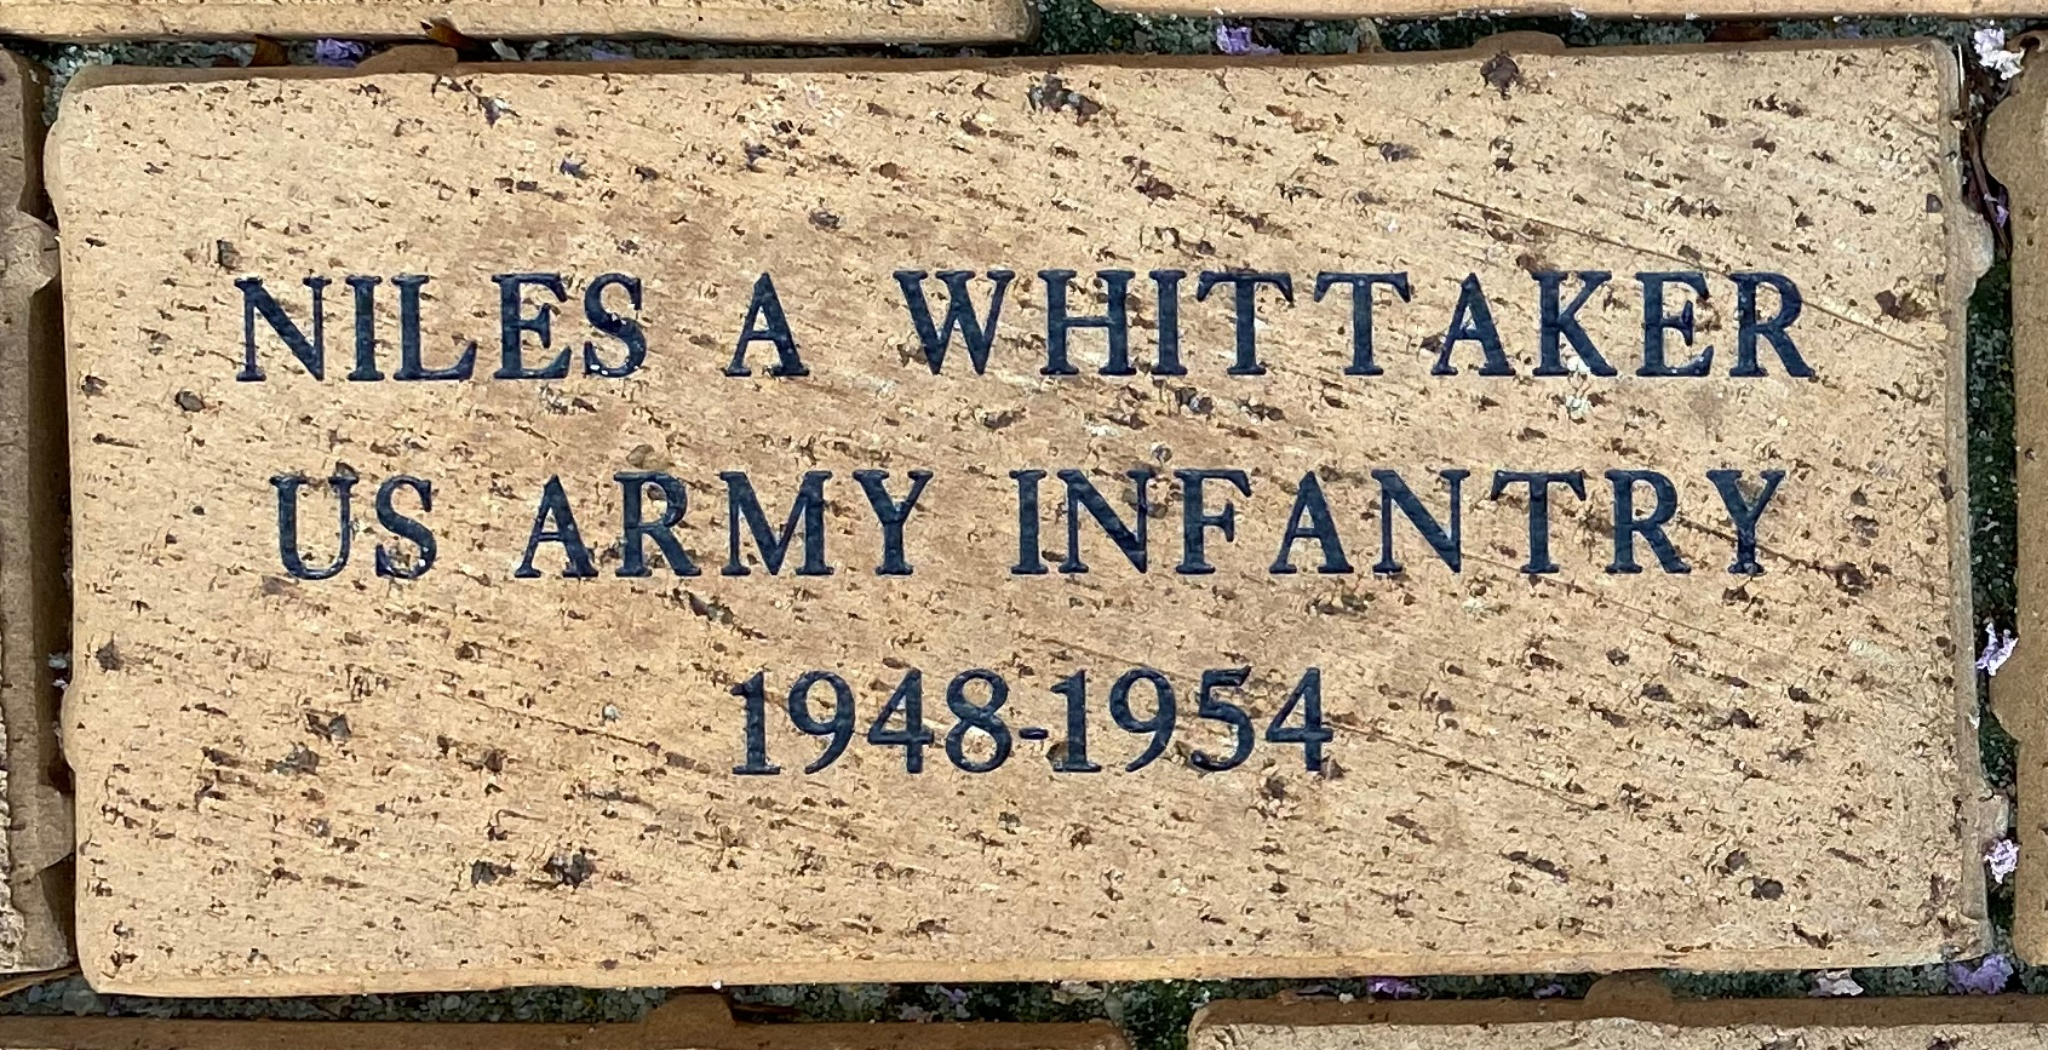 NILES A WHITTAKER US ARMY INFANTRY 1948-1954